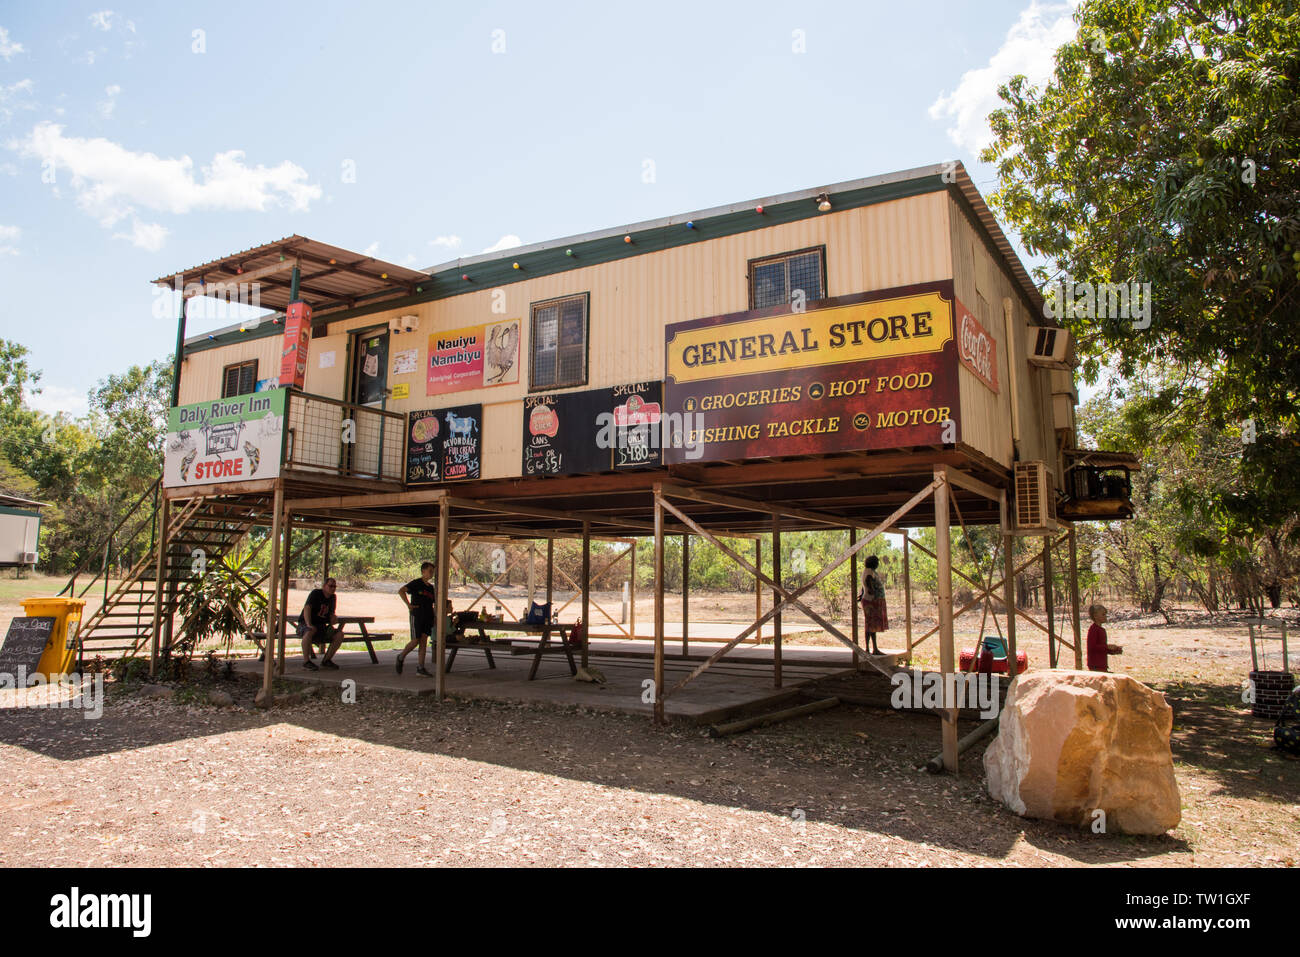 Daly, Northern Territory, Australia-September 15,2018: General store for the Daly River Inn with picnicking tourists and bushland in Daly, Australia - Stock Image